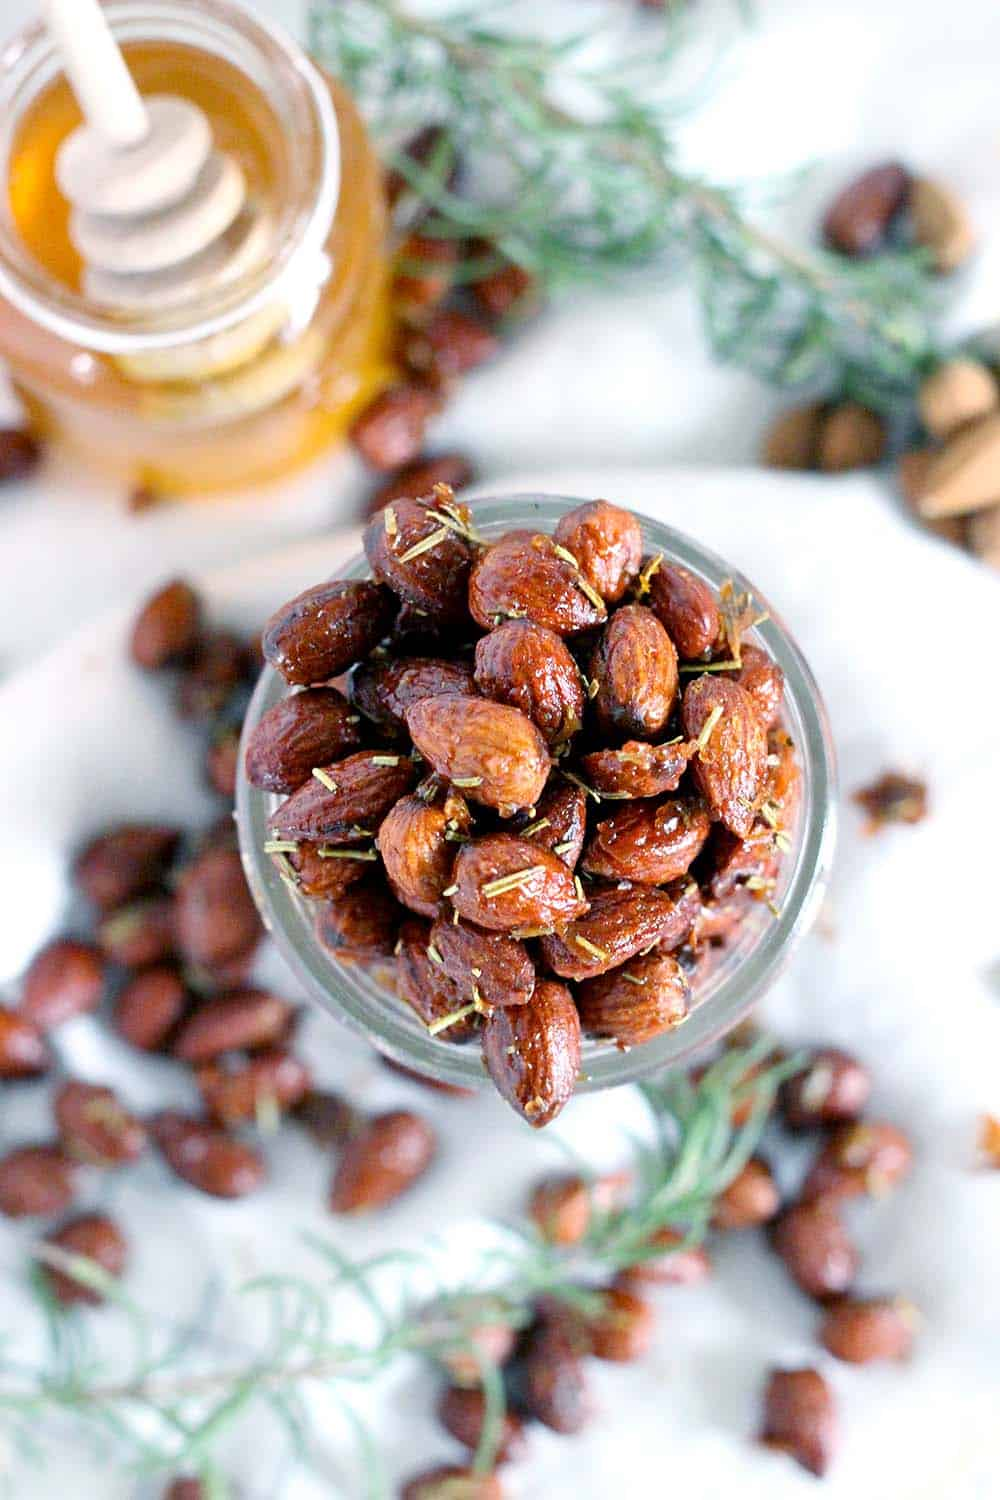 These Rosemary and Honey Roasted Almonds are my new favorite snack recipe- savory, sweet, and nutritious for a guilt-free midday treat! Plus, they're a cinch to make.